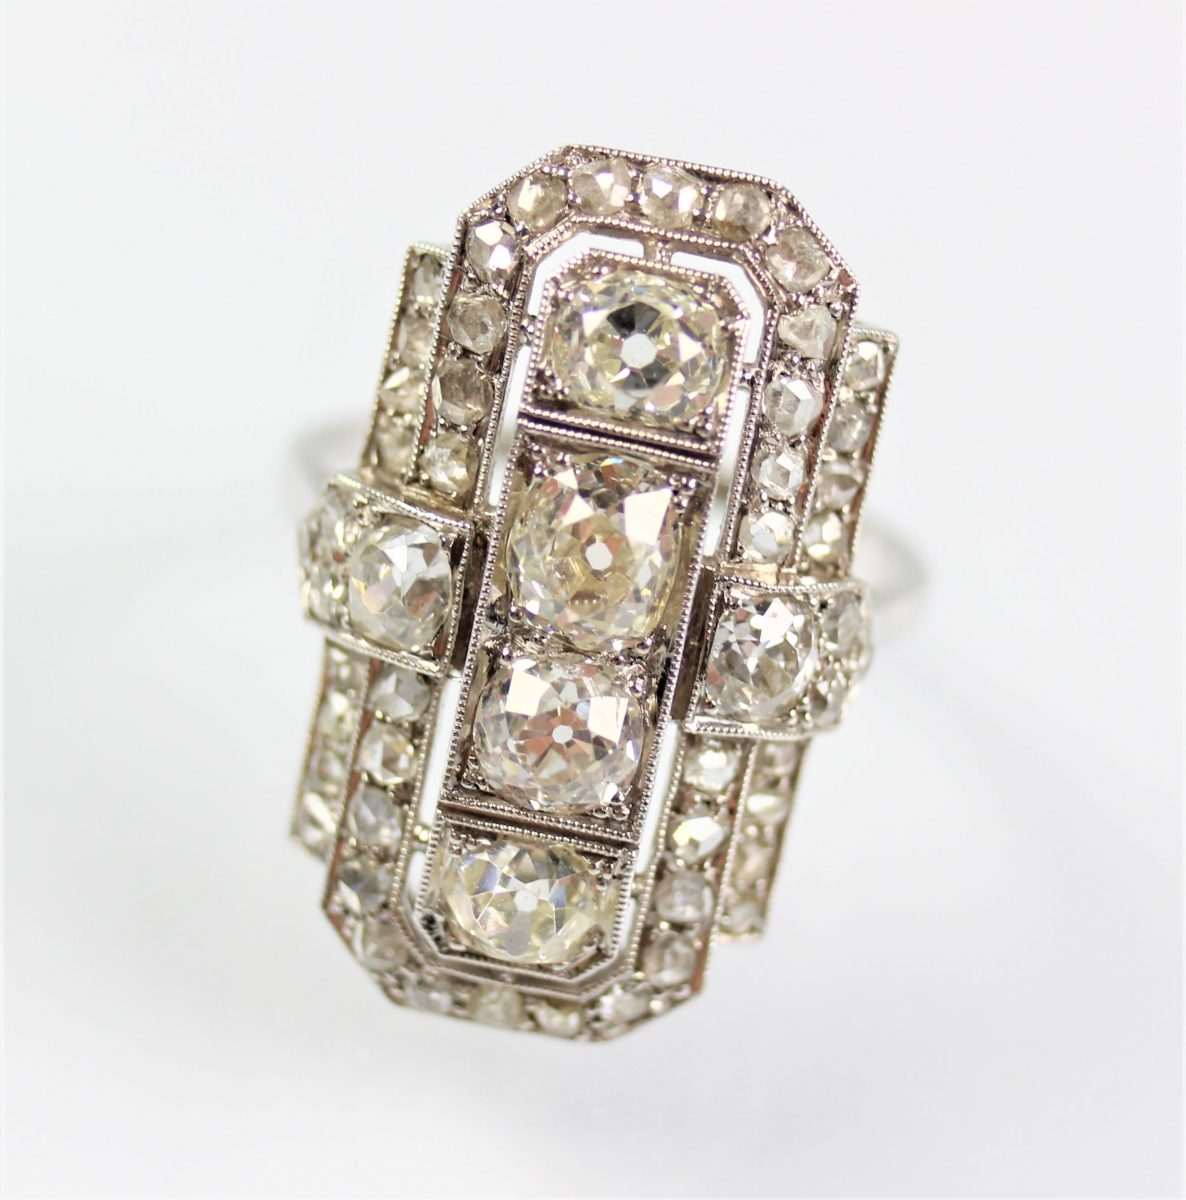 16. An Art Deco diamond ring SOLD for £2,400 - February 2018